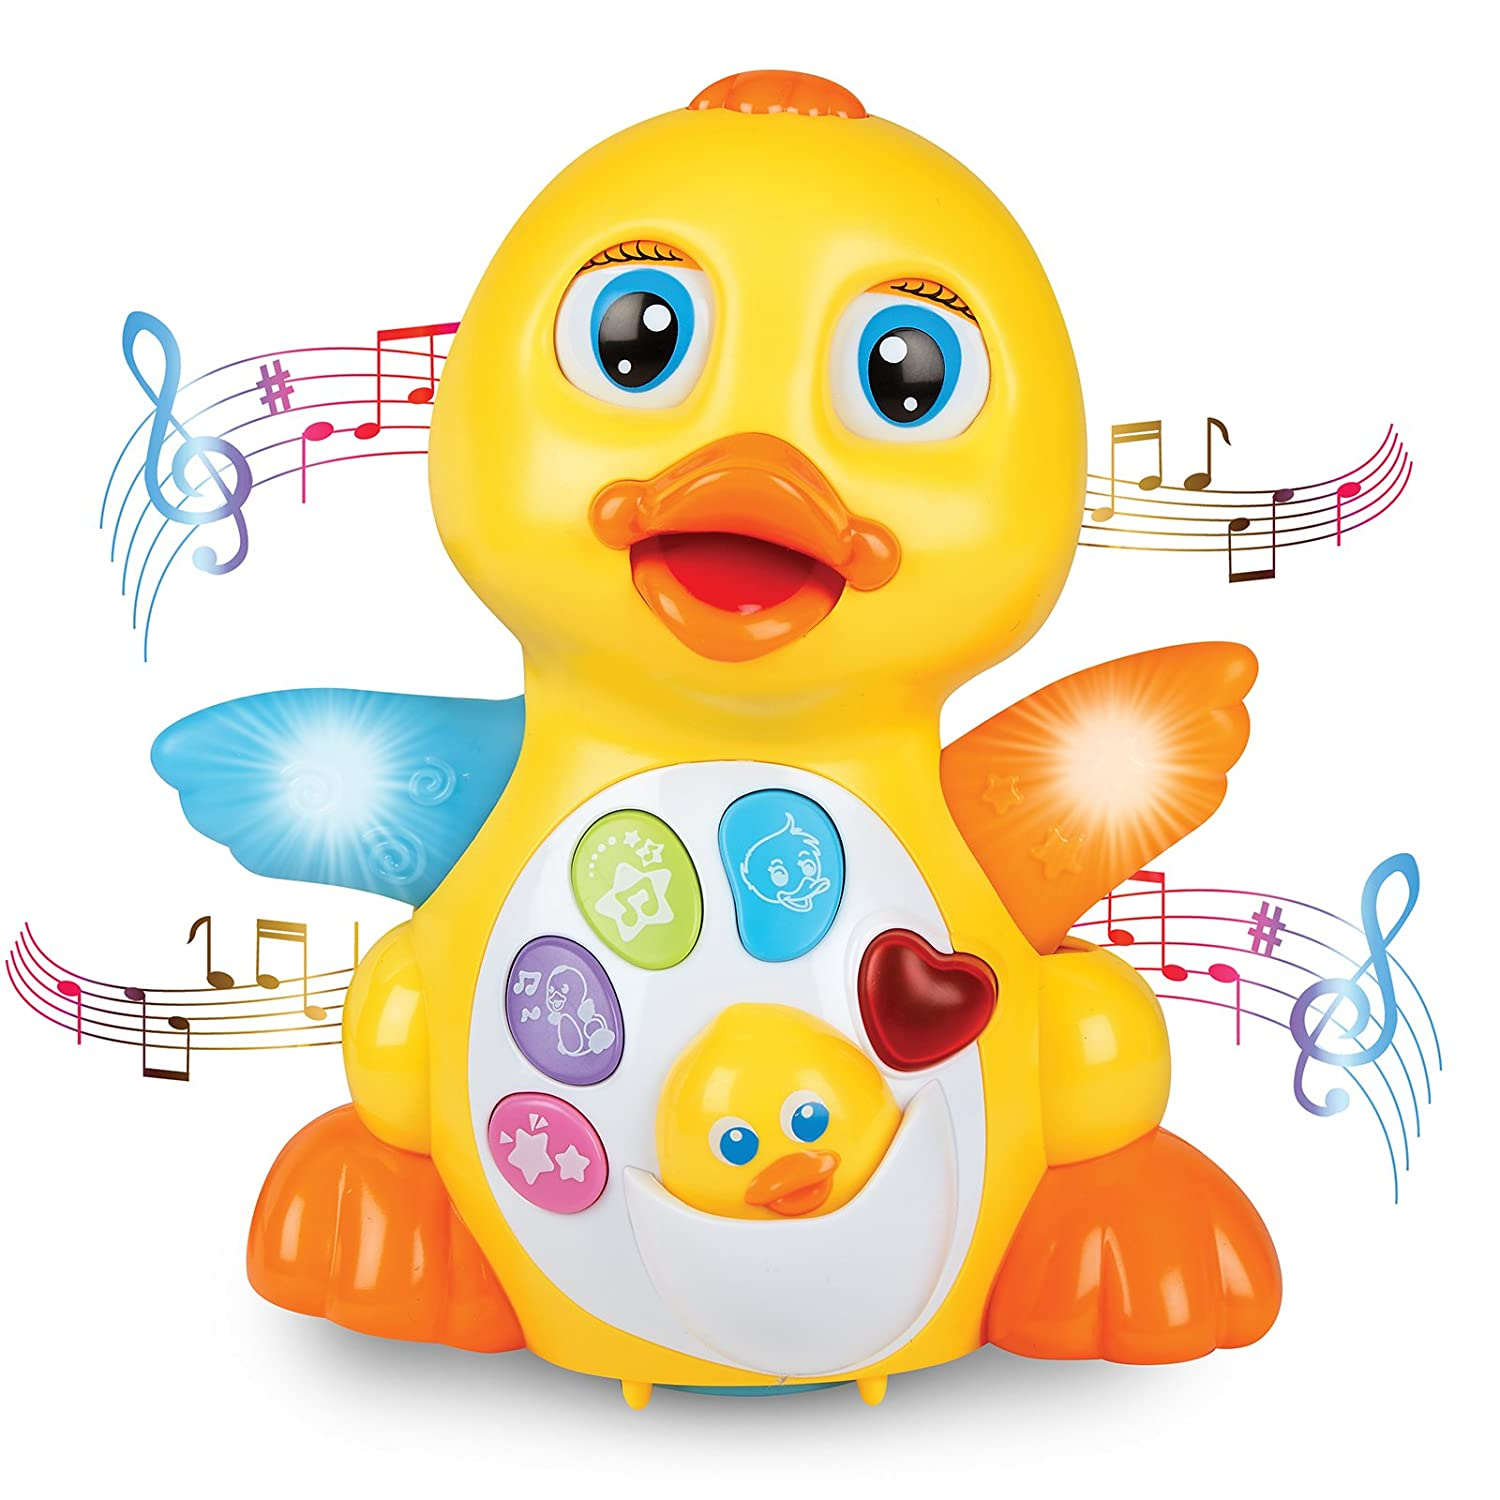 Amazon.com: JTOYS Light up Dancing and Singing Duck Toy: Toys & Games